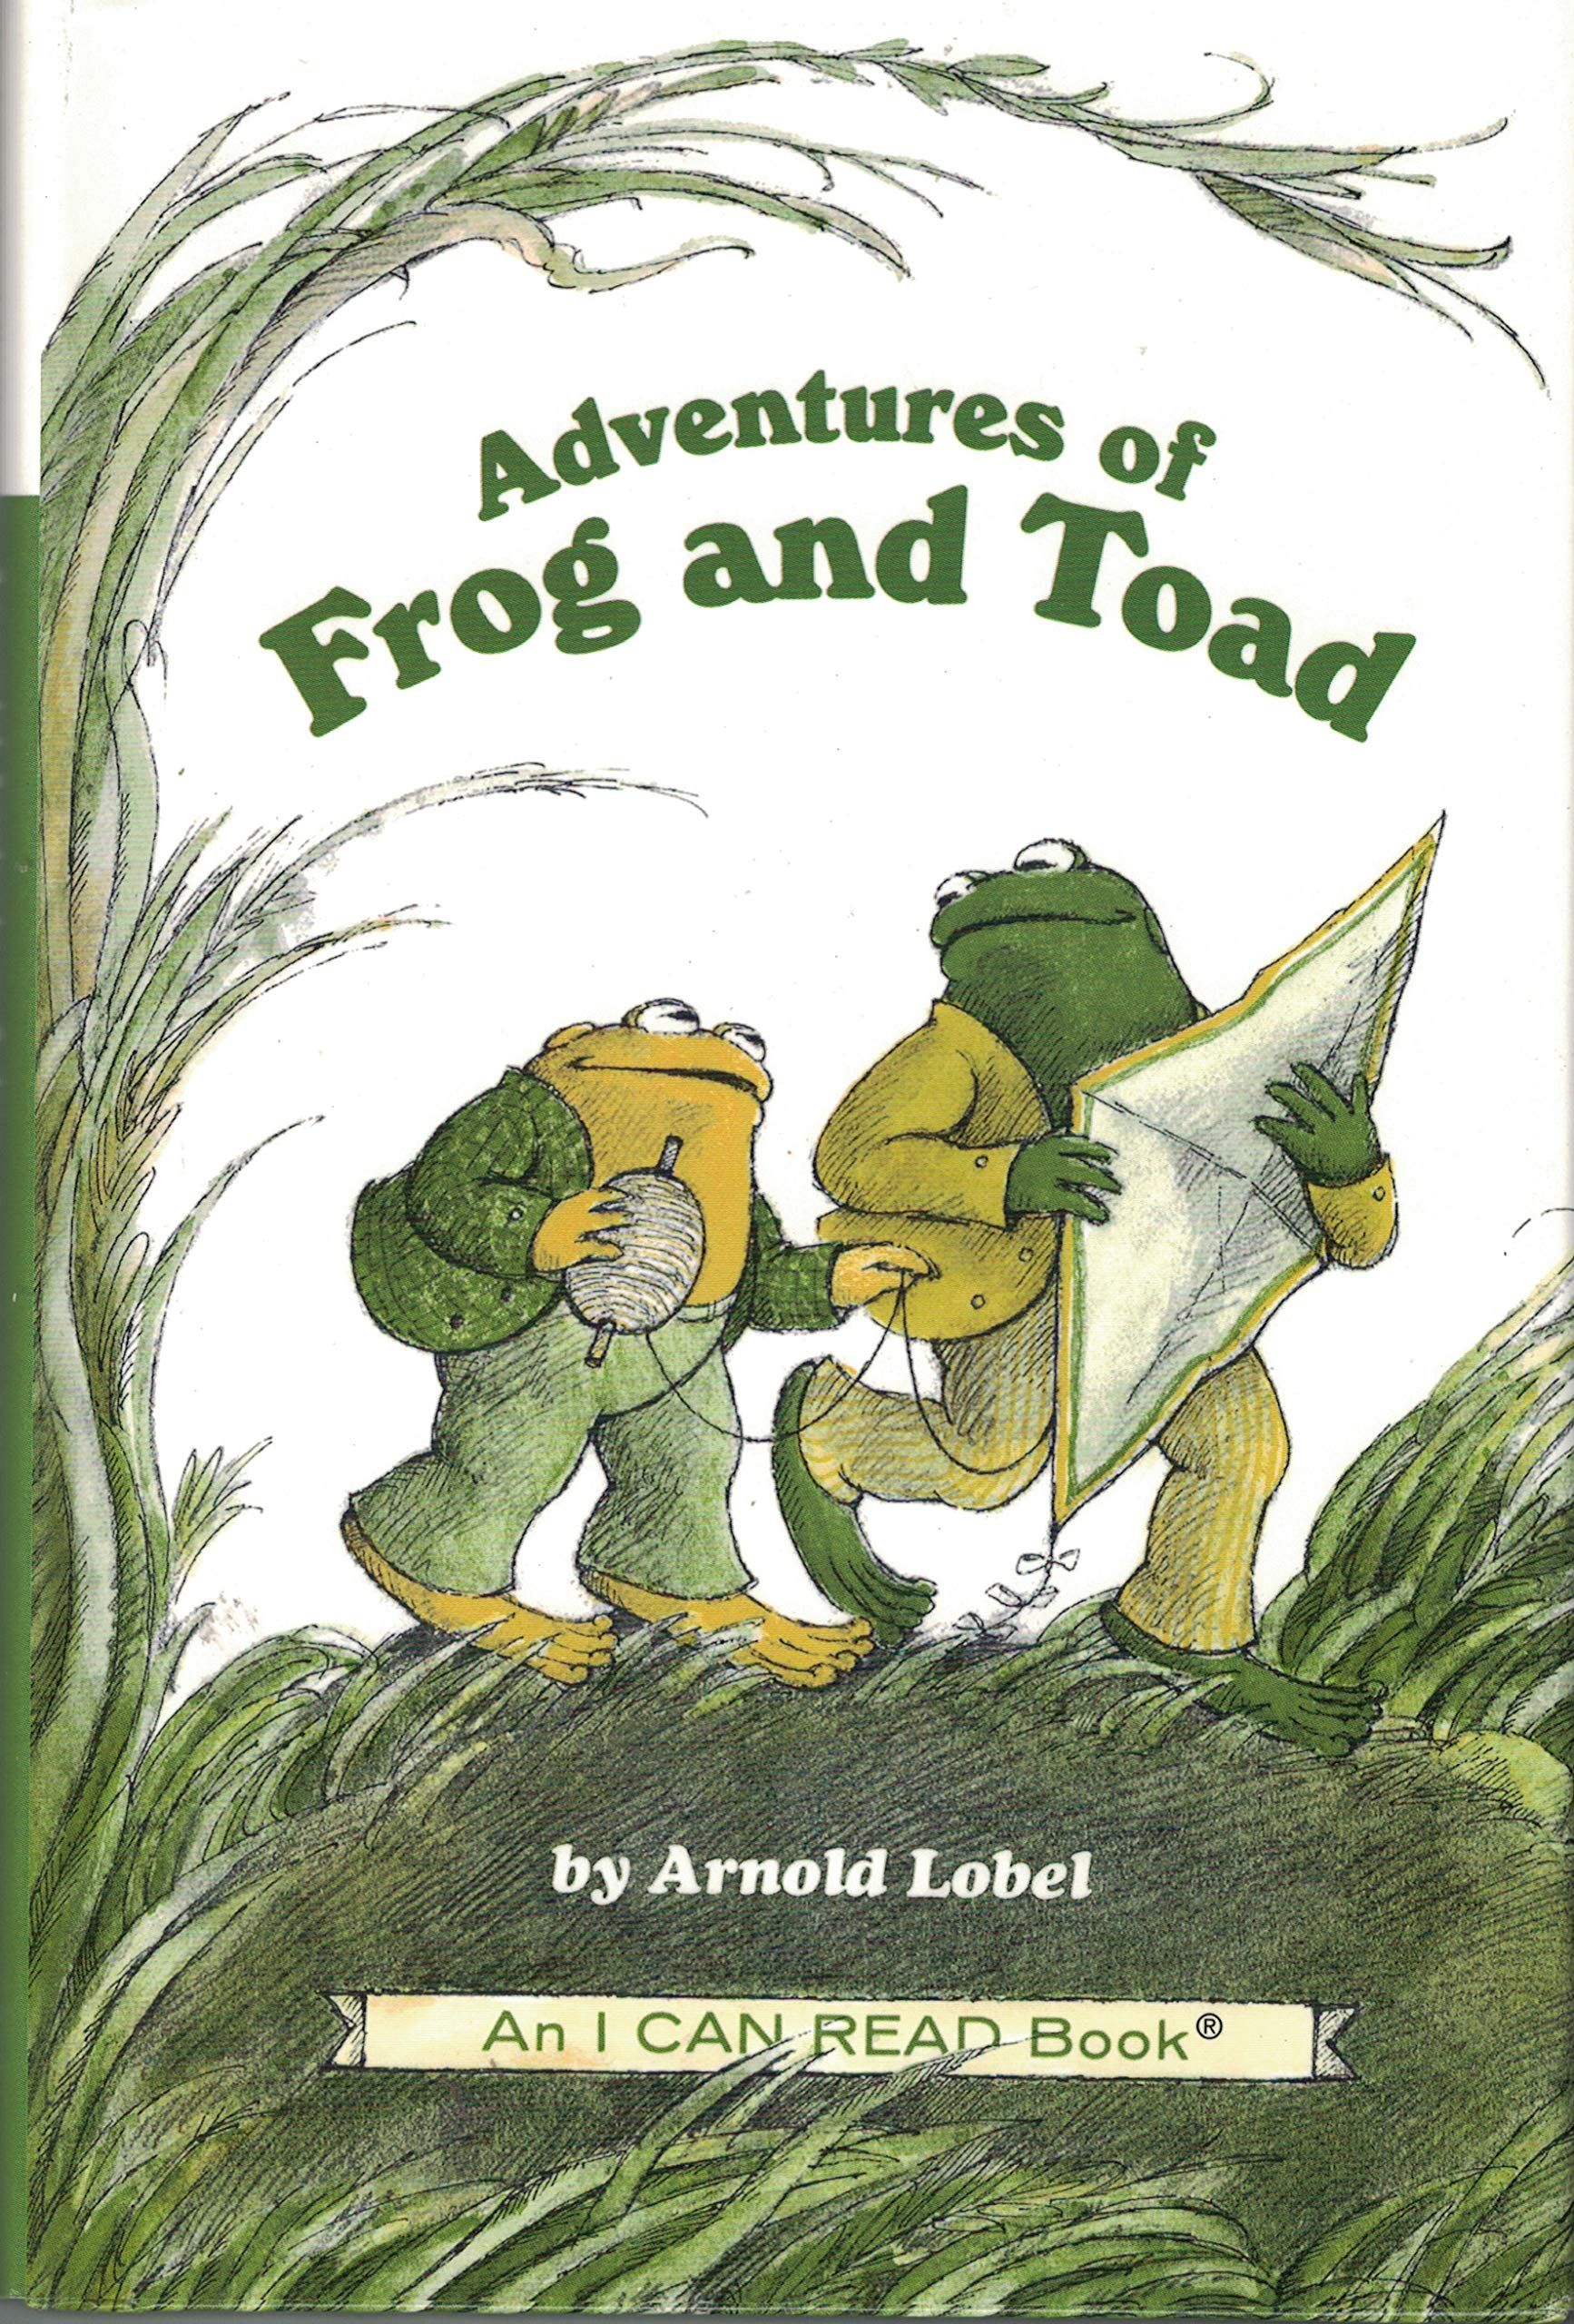 This Book Contains Several Adventures That Frog And Toad